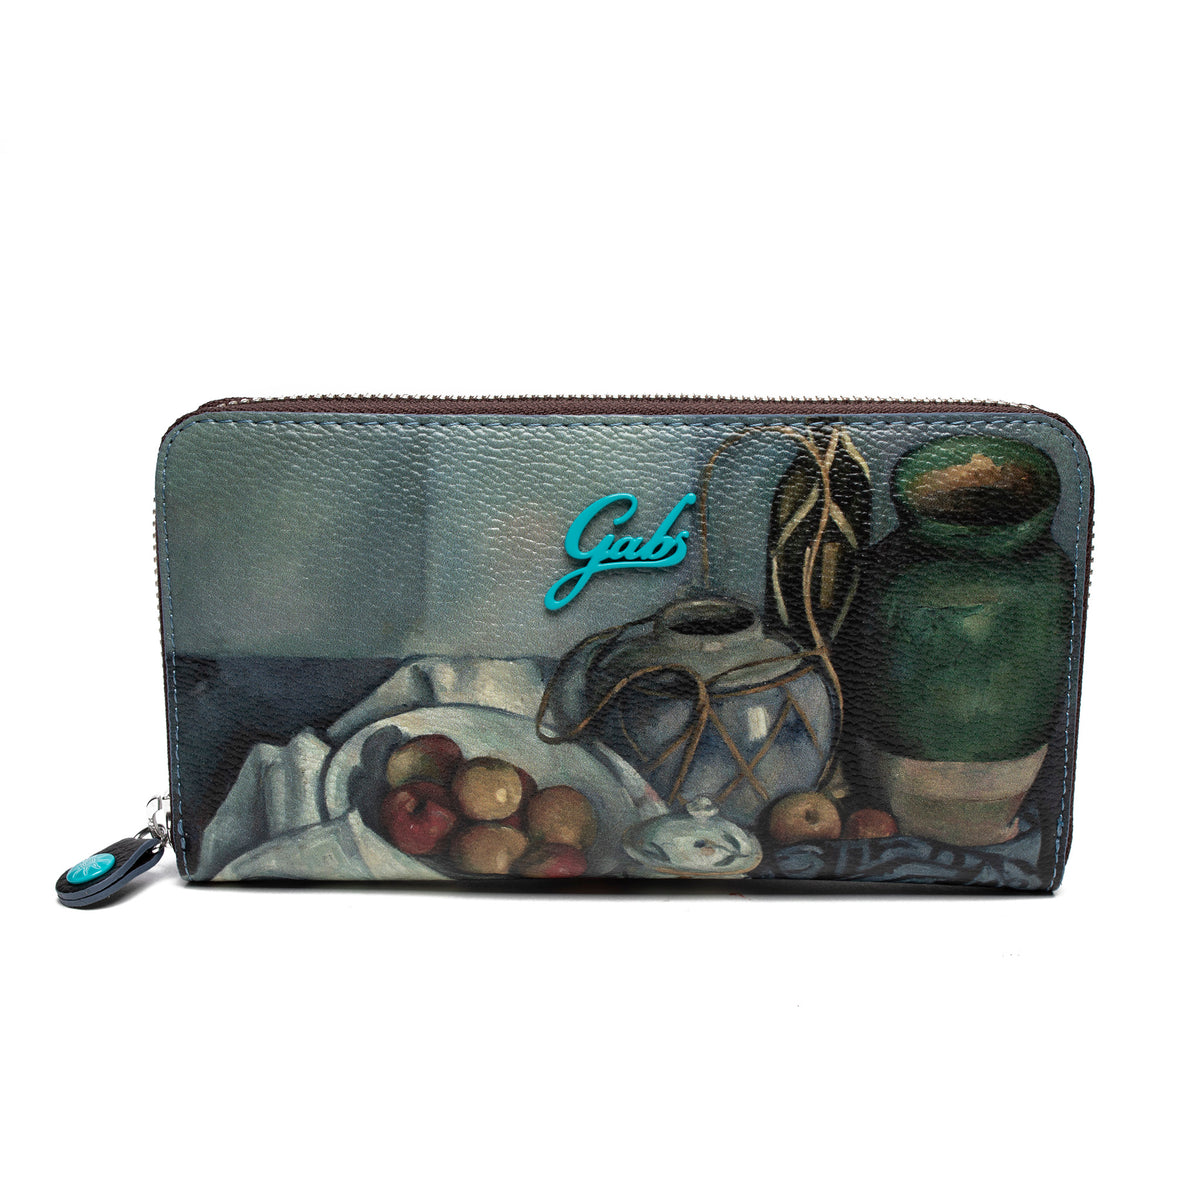 Wallet featuring Cezanne's Still Life with Fruit by Gabs, Italy